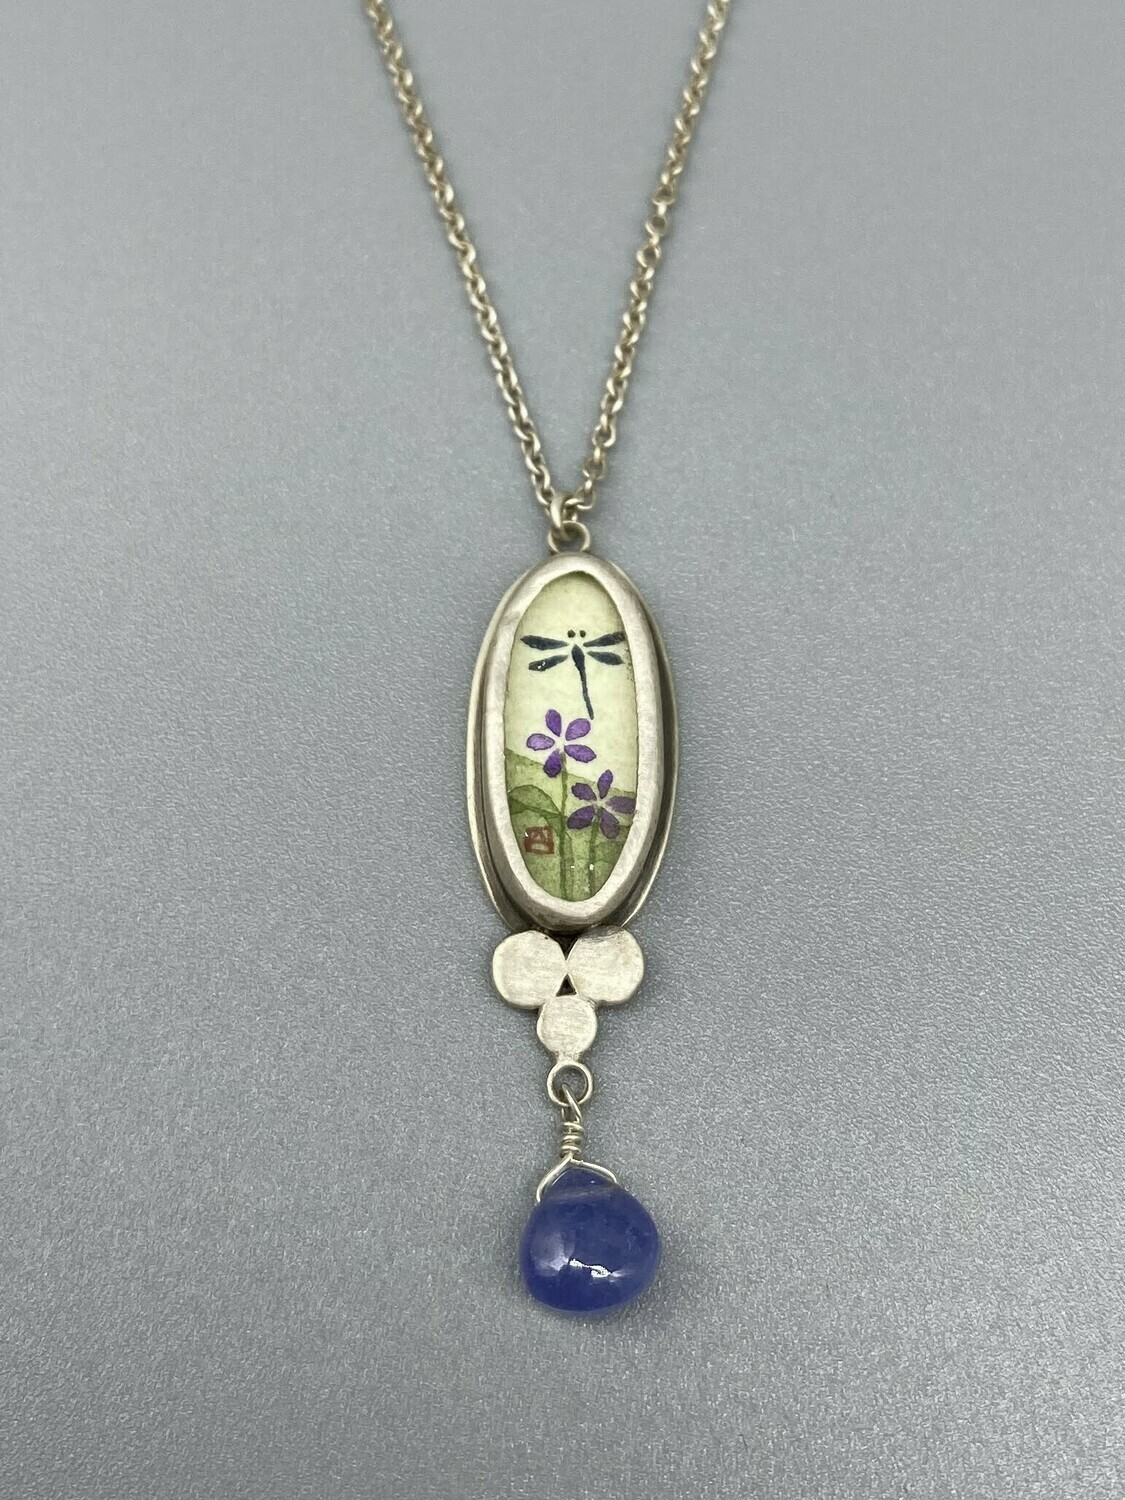 Hand Painted Dragonfly Necklace w/Tanzanite Drop, Sterling Silver  - Ananda Khalsa - Northampton MA